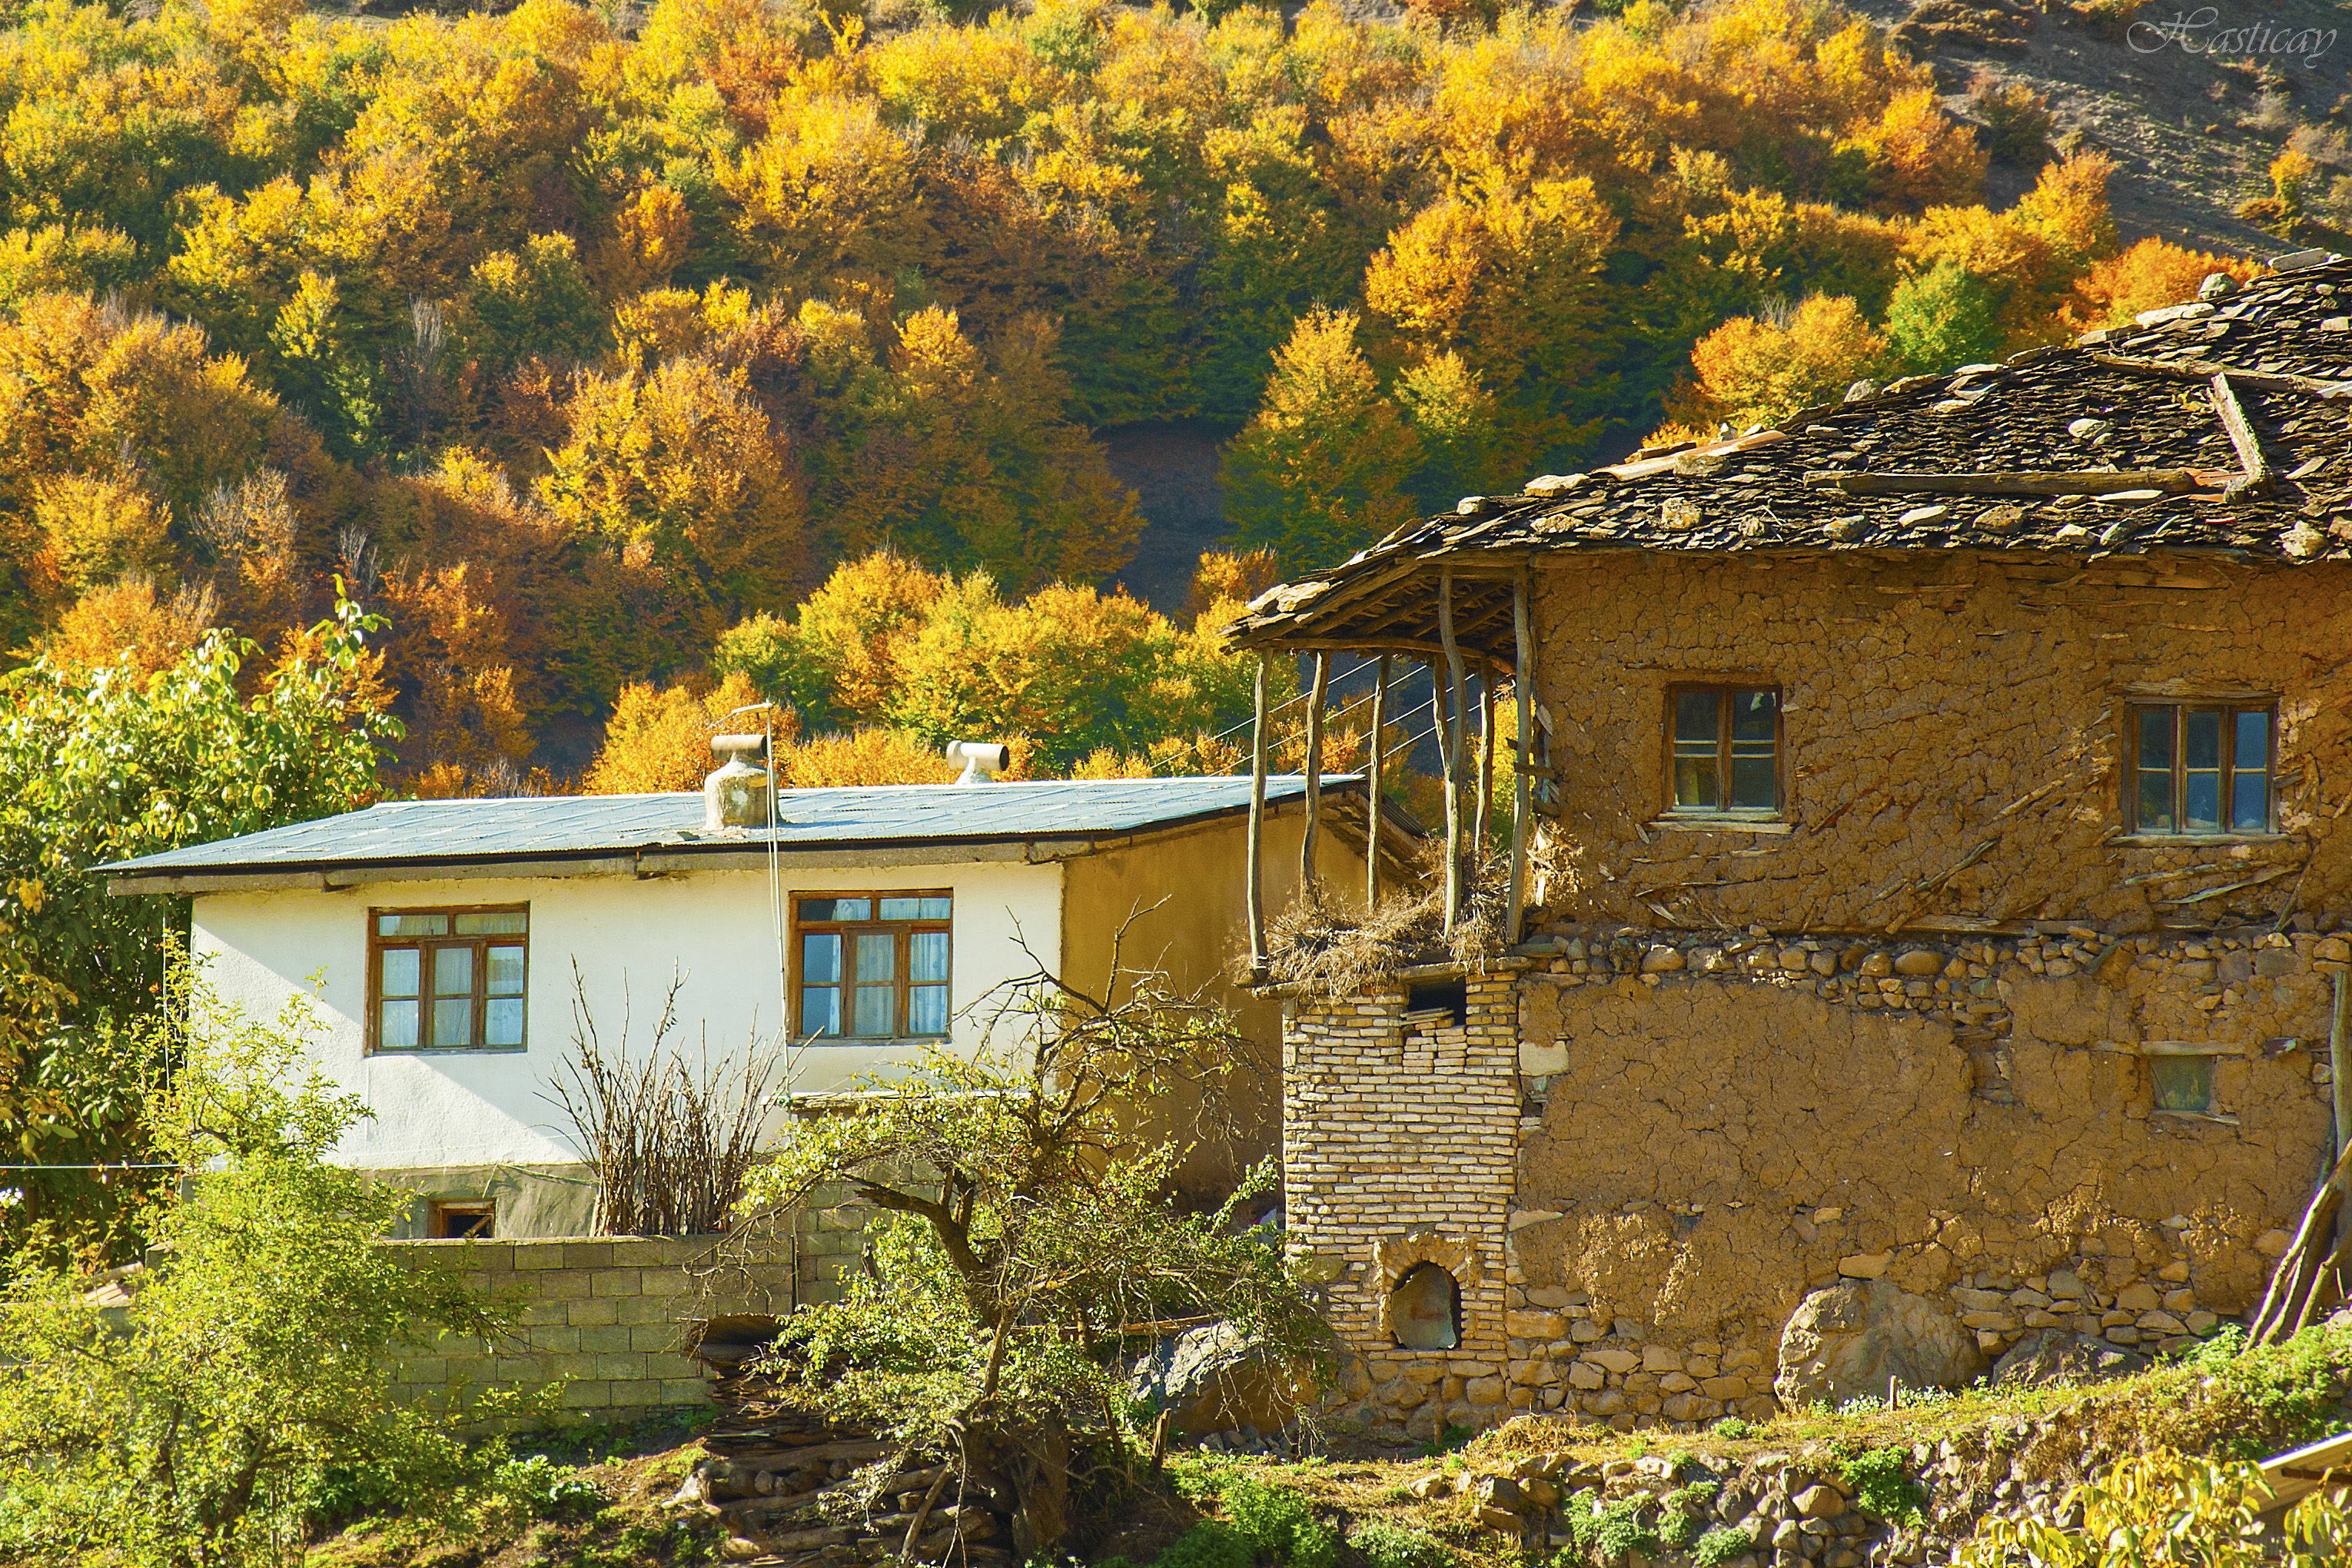 Autumn in a village far from urban crown and mess! Nater village located on top of mountains in Chaloos, Mazandaran, Iran